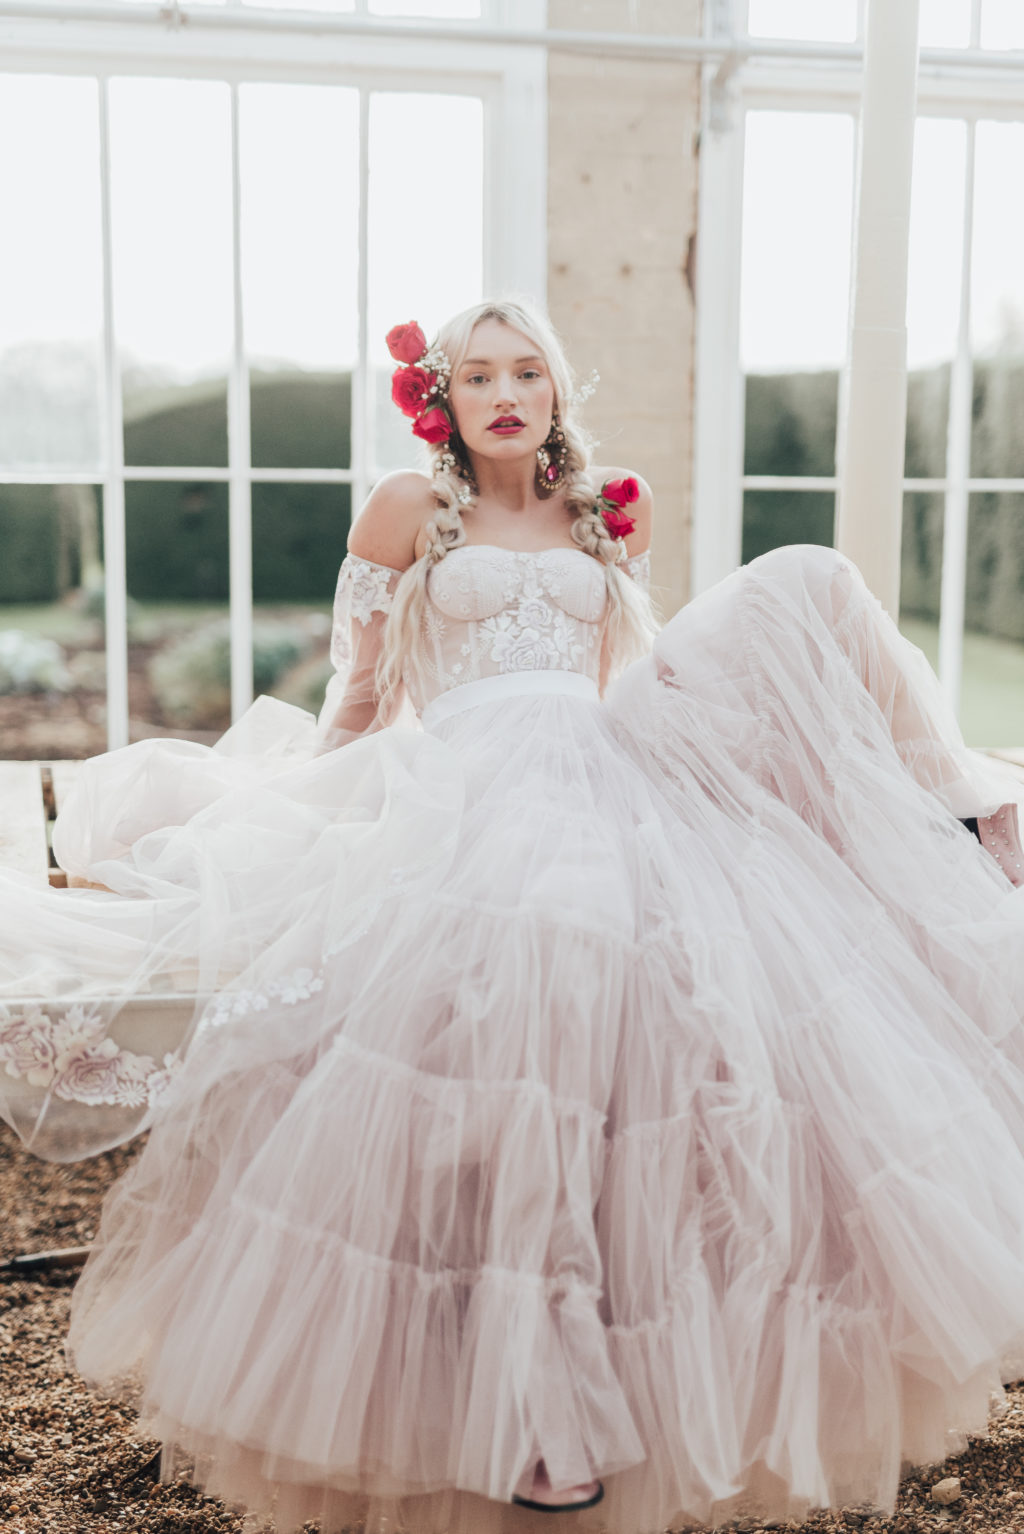 Ethical Bridalwear by Bowen Dryden: The 'Rebel Rose' Collection